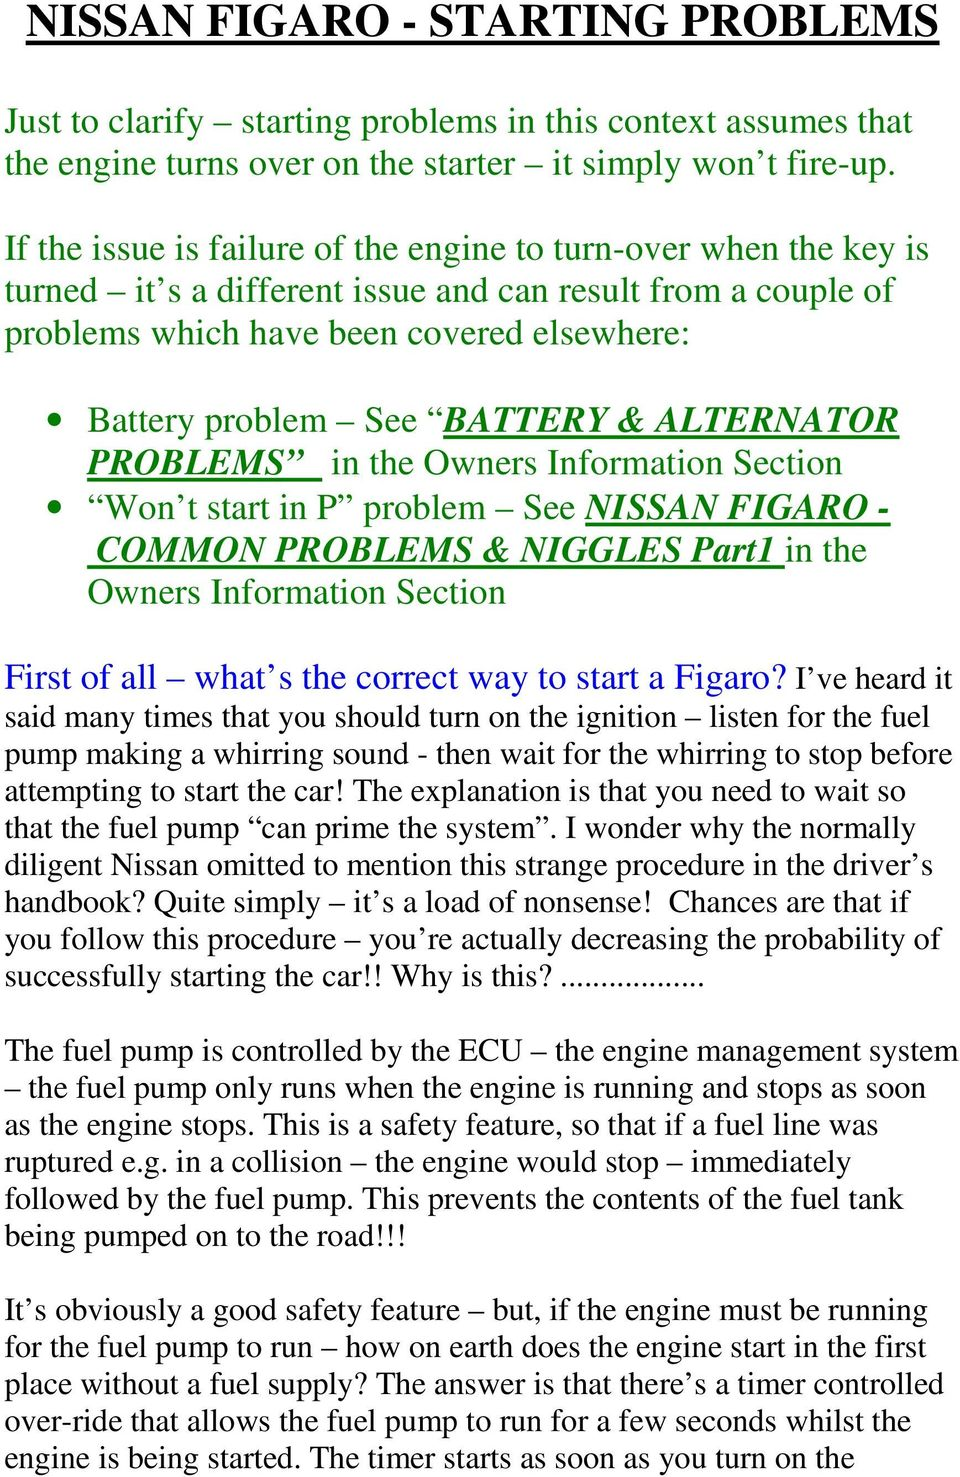 Nissan Figaro Starting Problems Pdf Firing Order Diagram Battery Alternator In The Owners Information Section Won T Start P Problem See